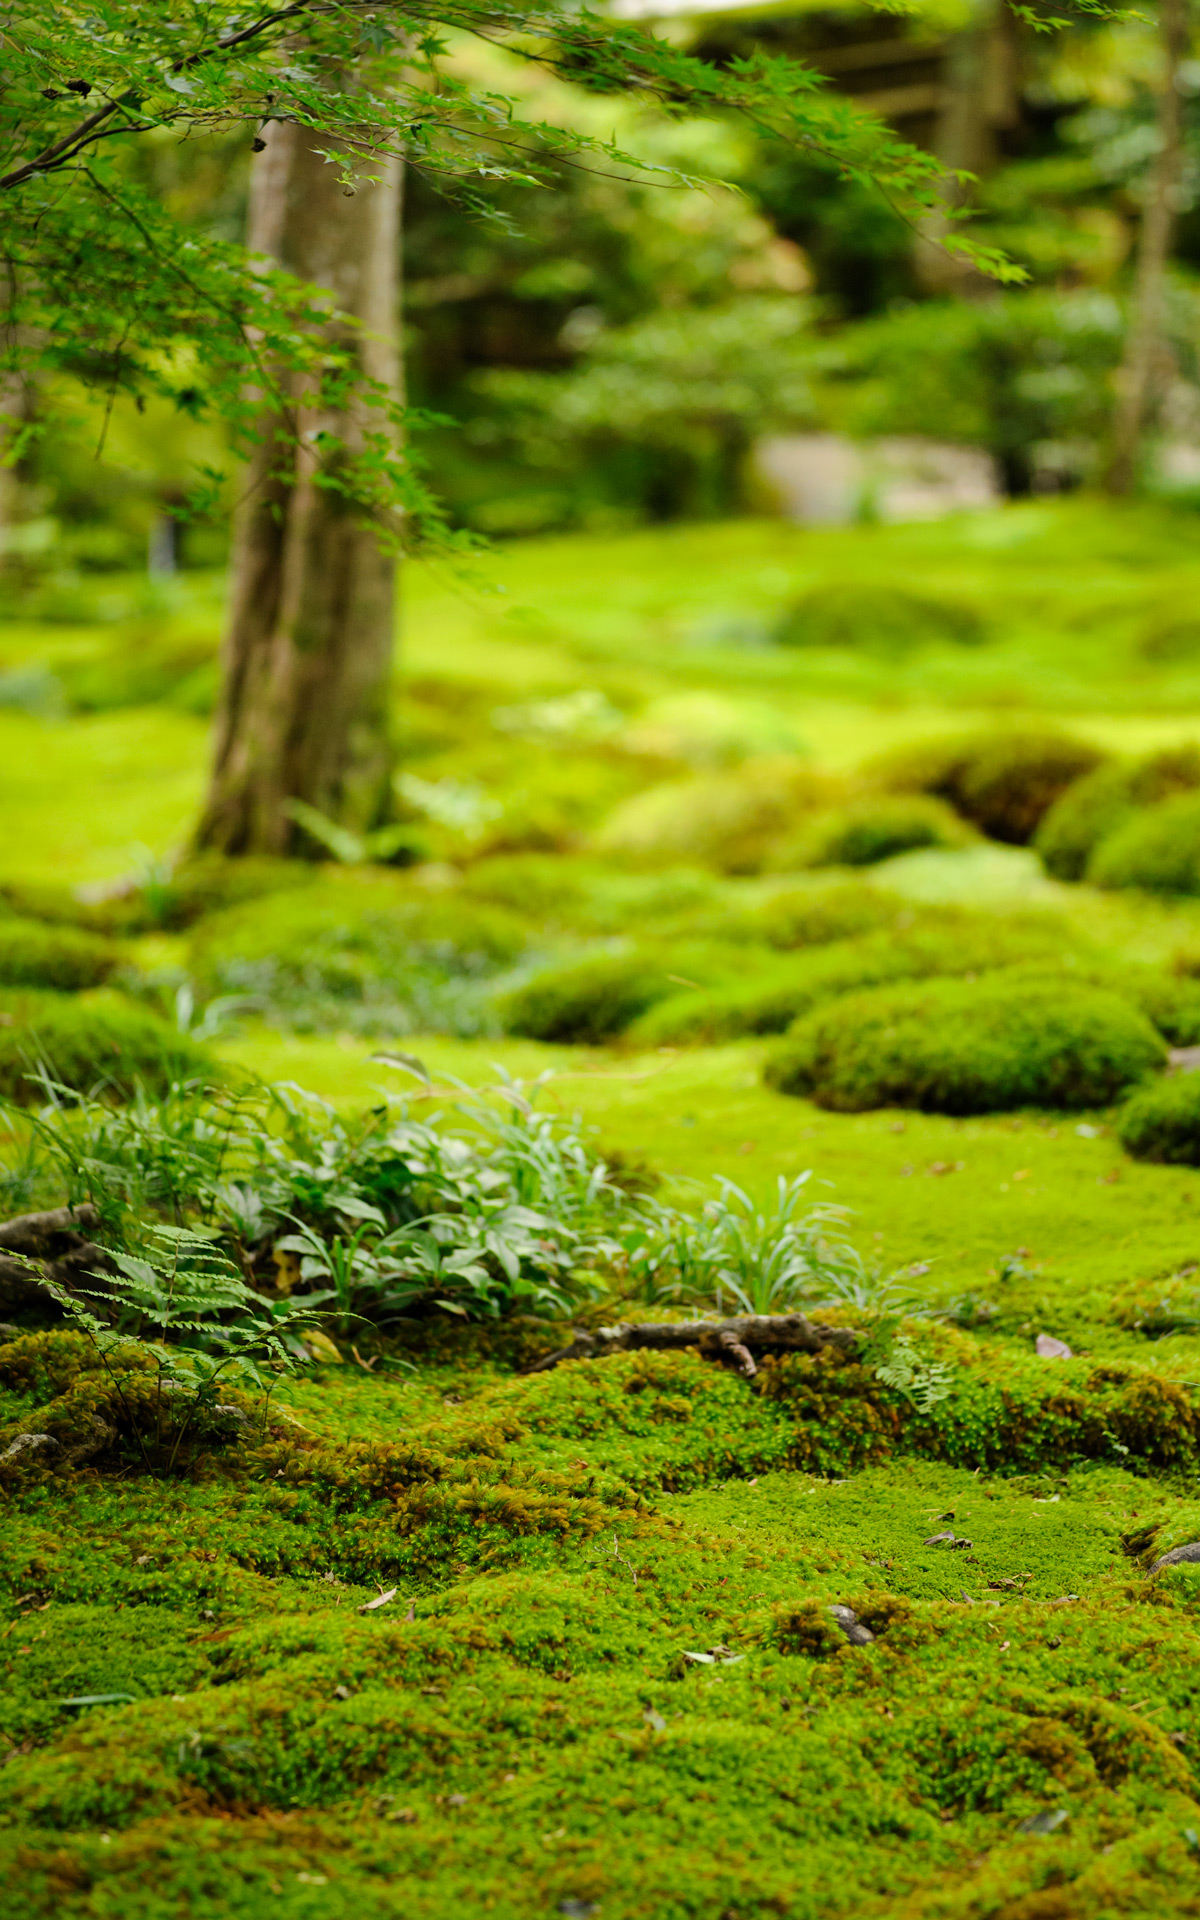 Jeffrey Friedl's Blog » More From the Gioji Temple: Lotsa Moss and